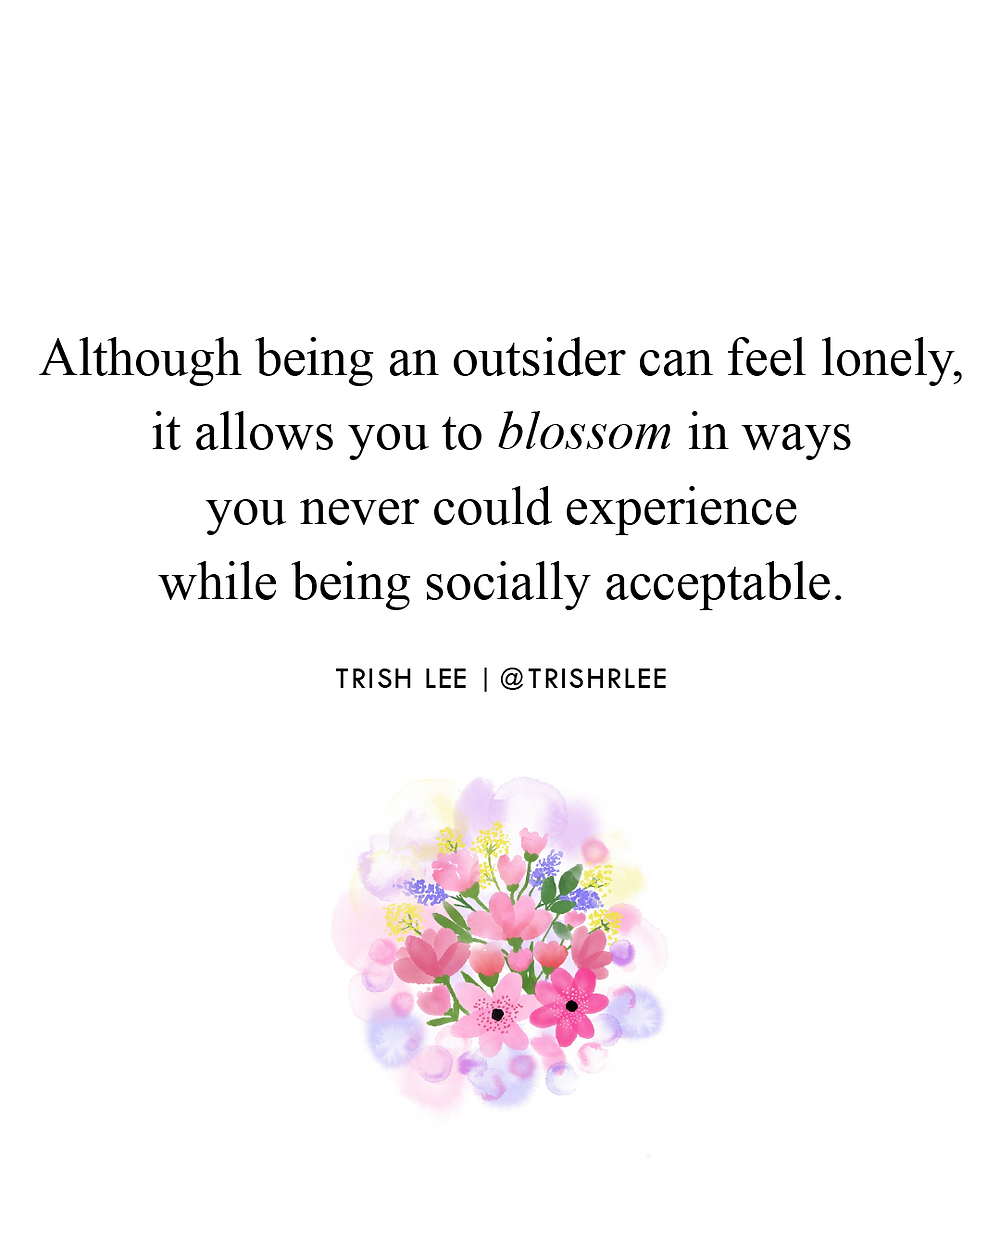 although being an outsider can feel lonely-it allows you to blossom in ways you never could experience while being socially acceptable